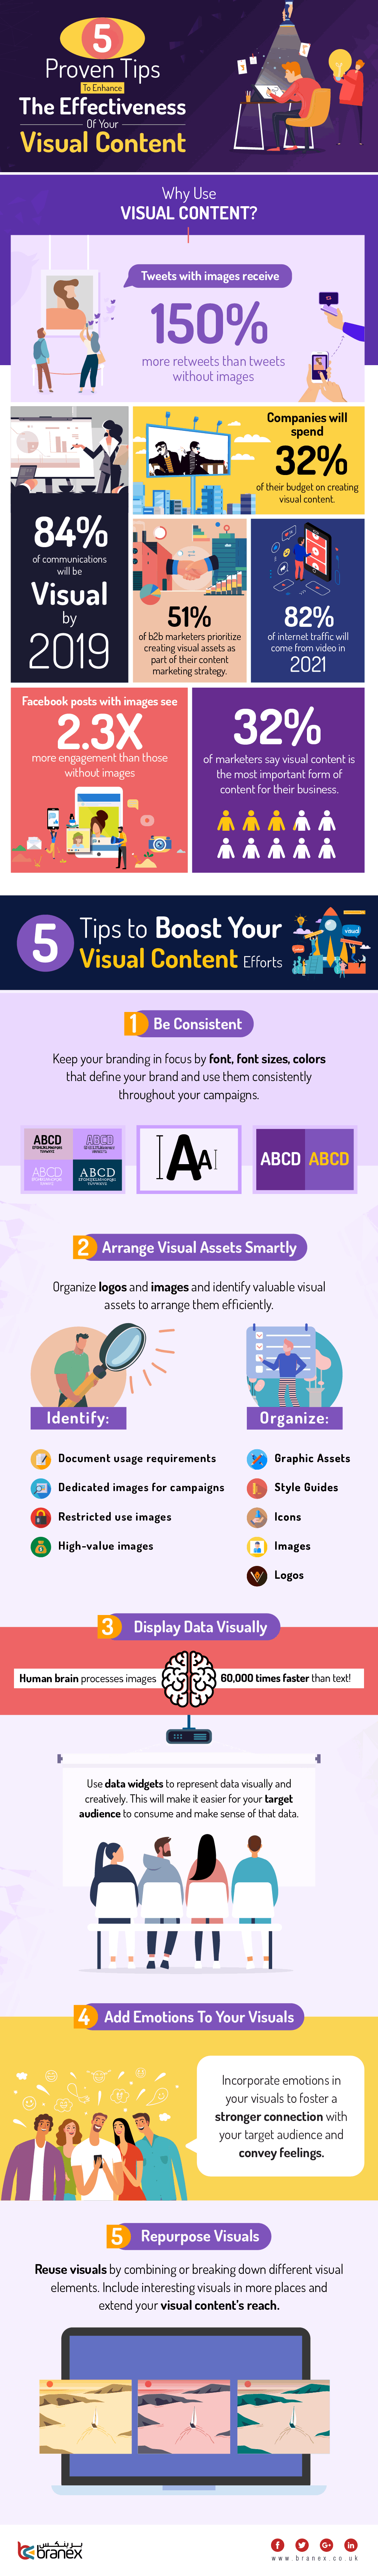 Infographic provides an overview of visual marketing stats and tips